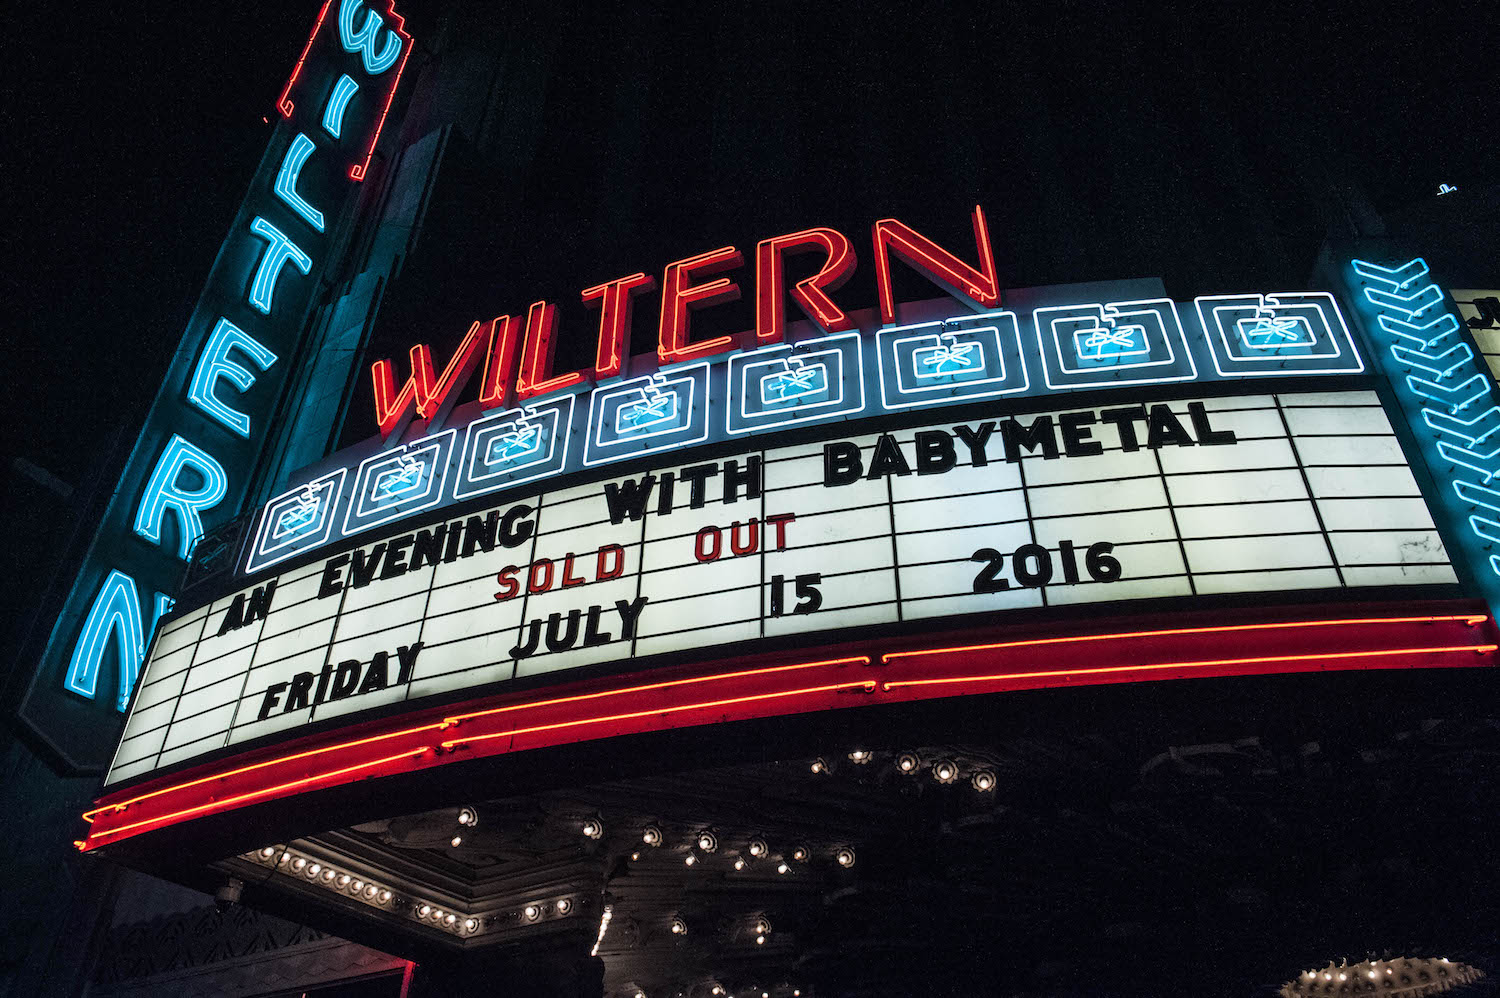 BABYMETAL - Wiltern Theatre -  July 15, 2016